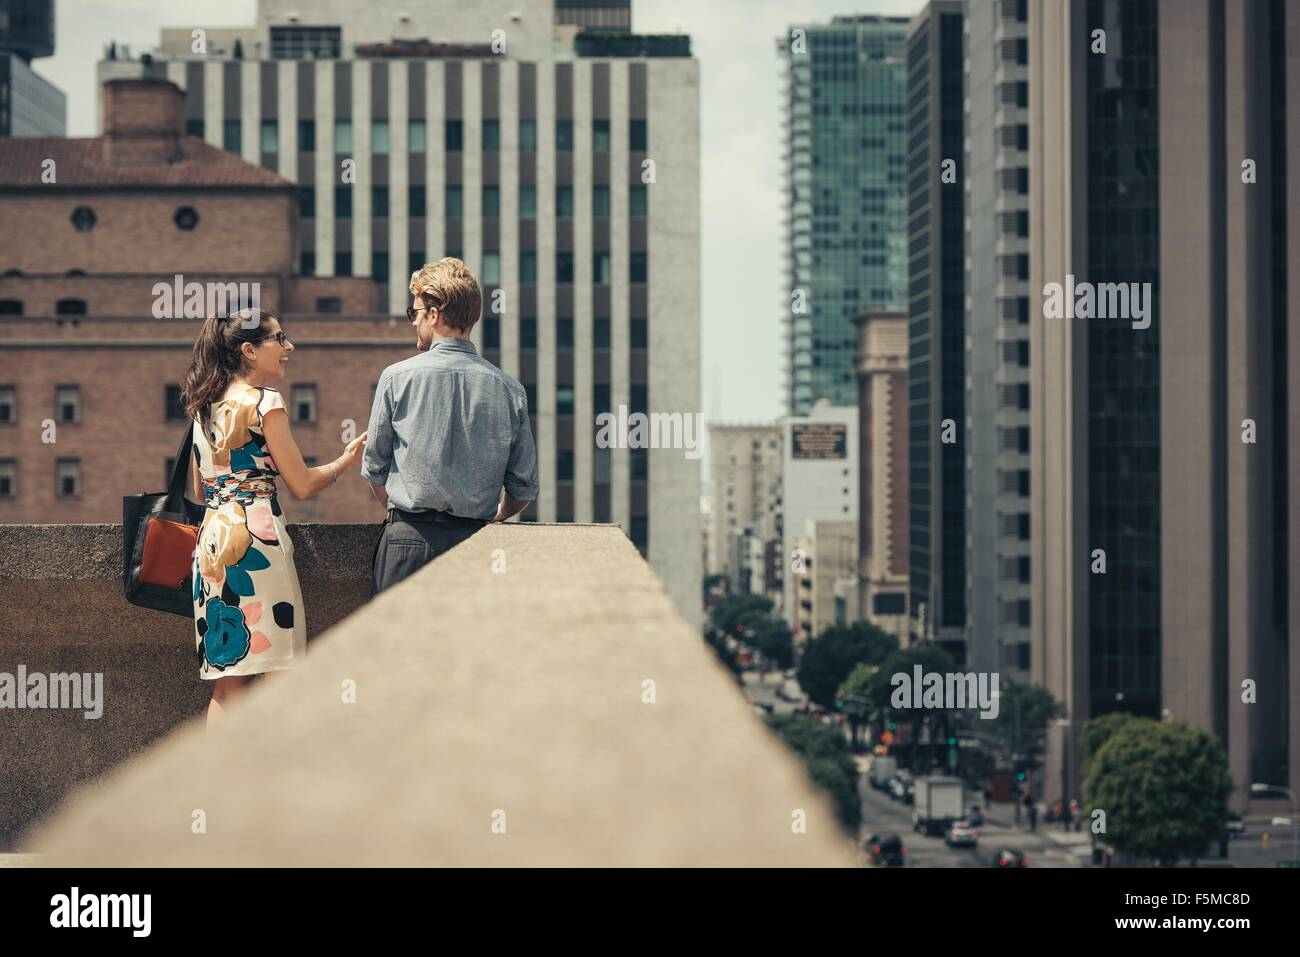 Businessman and woman talking on rooftop, Los Angeles, USA - Stock Image